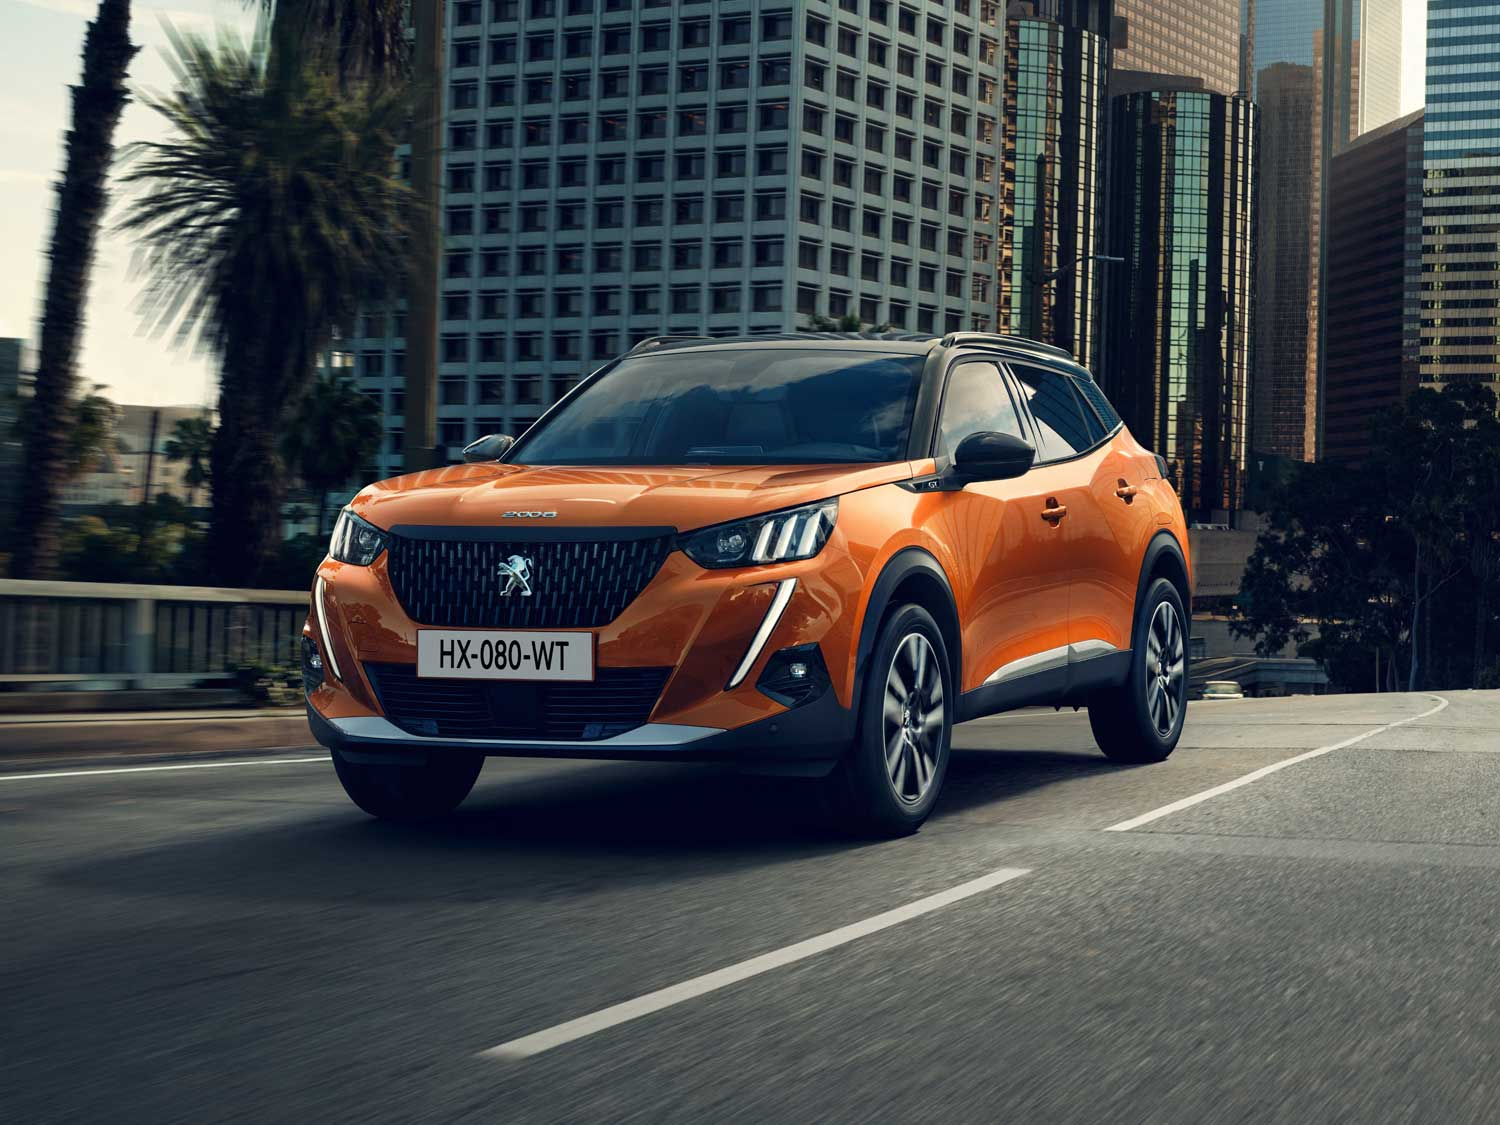 All New Peugeot 2008 for £269 per Month